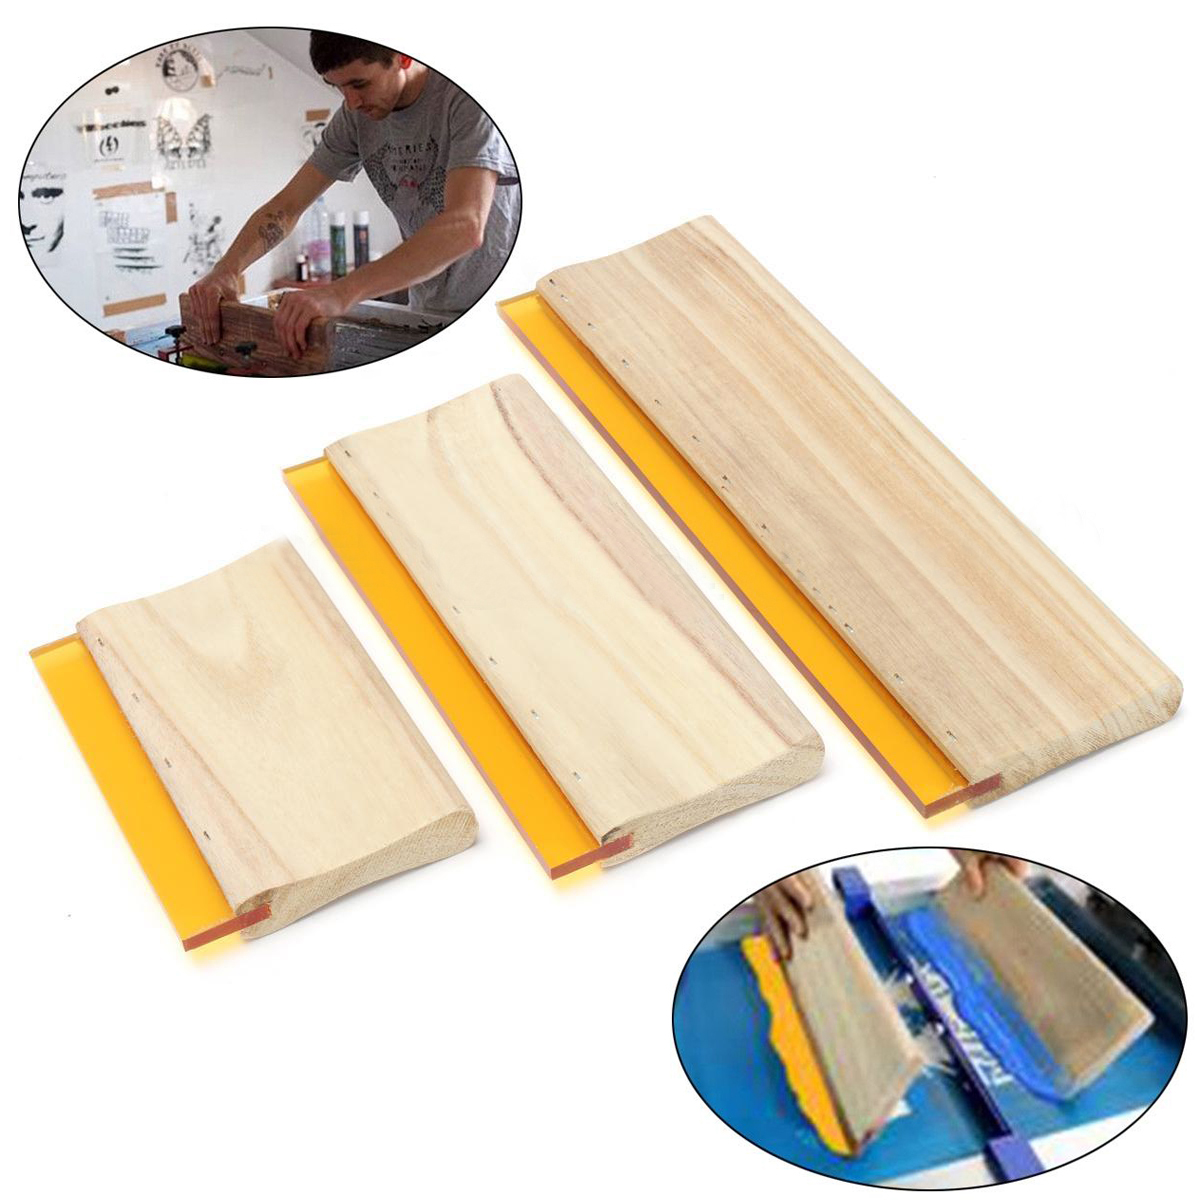 3pcs/lot Wearproof Silk Screen Printing Squeegees Blade Wooden Handle Mayitr Ink Scraper Scratch Board Tools 16cm 24cm 33cm